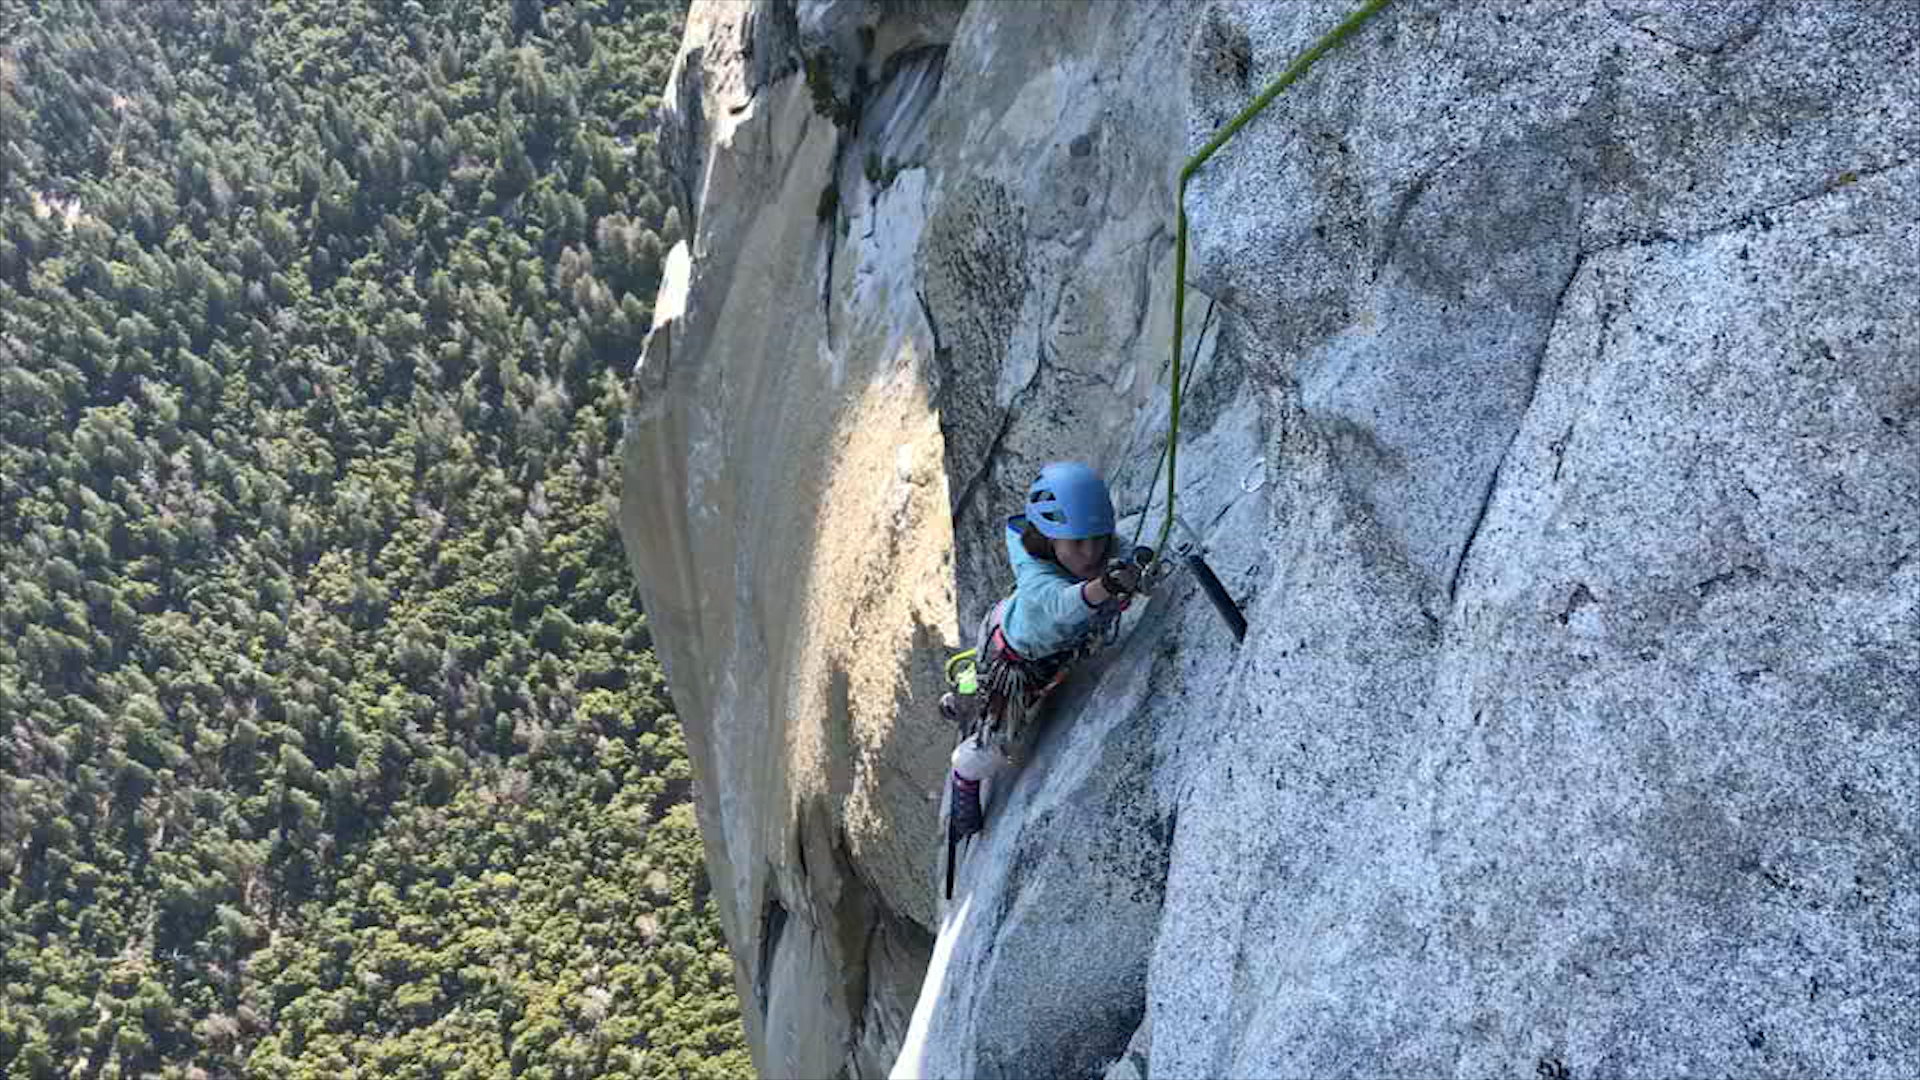 10-year-old becomes youngest person in history to climb